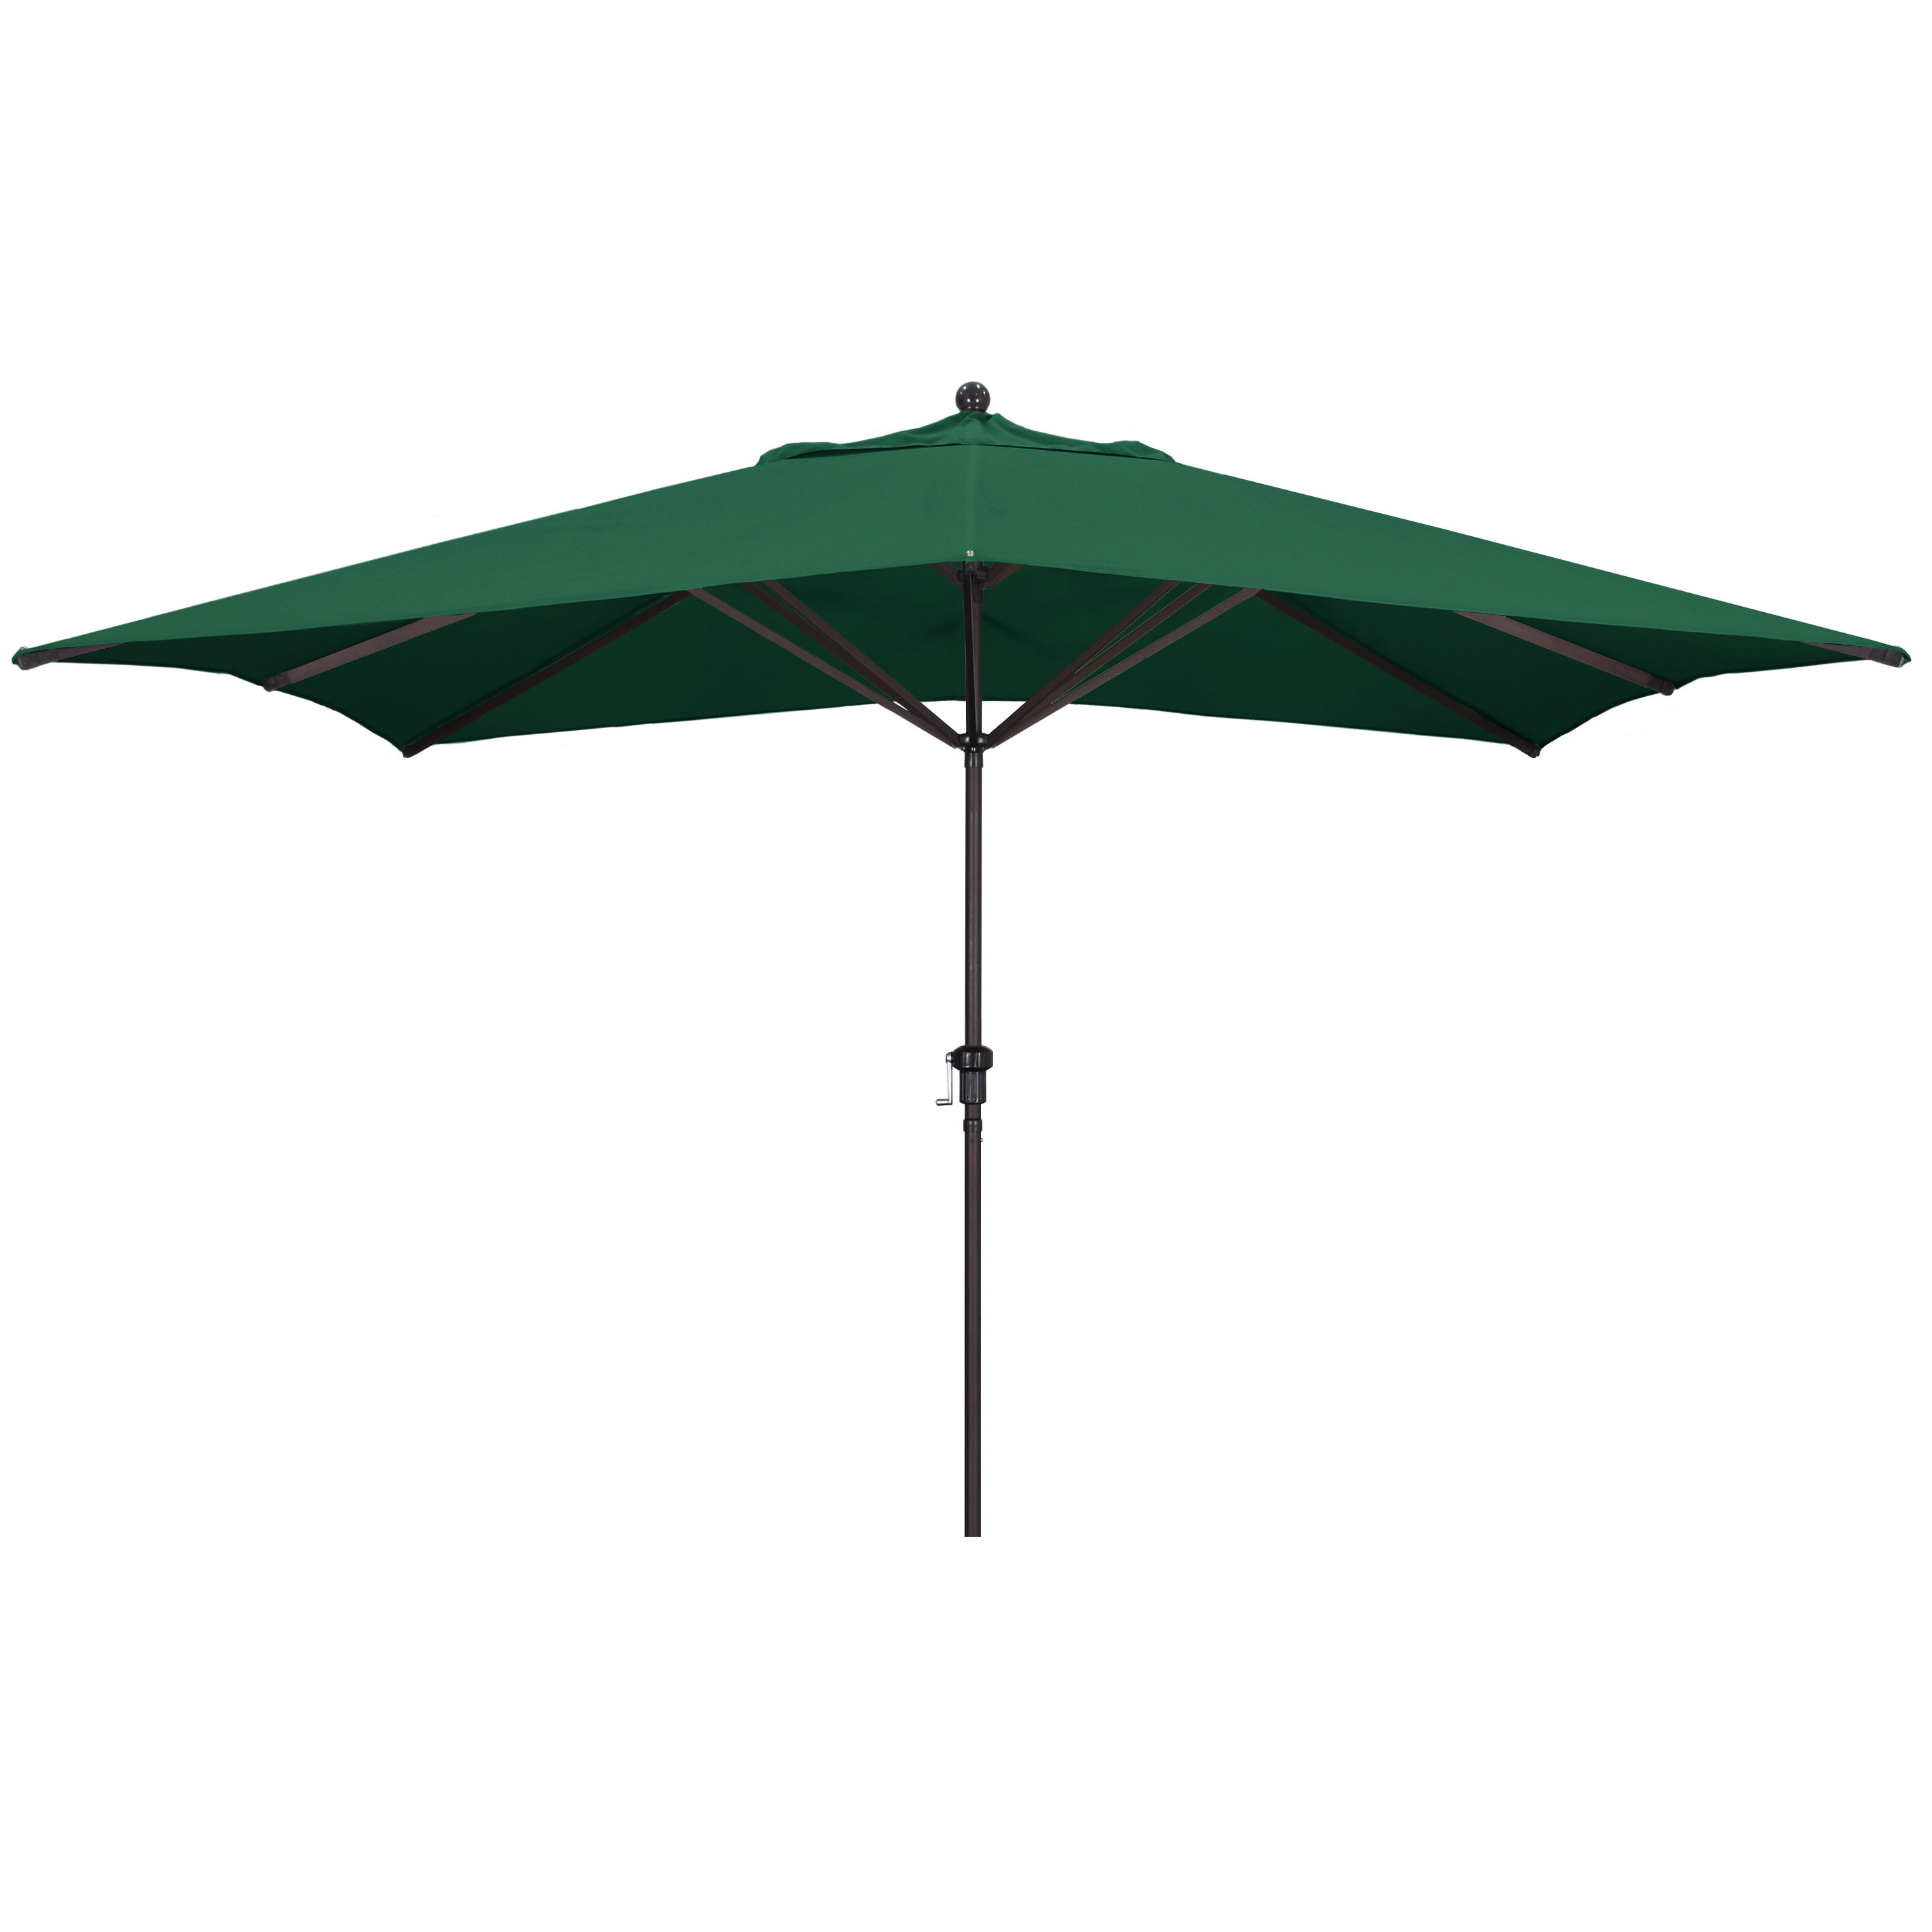 2020 Carlton 11' X 8' Rectangular Market Umbrella Intended For Bonview Rectangular Market Umbrellas (View 13 of 20)